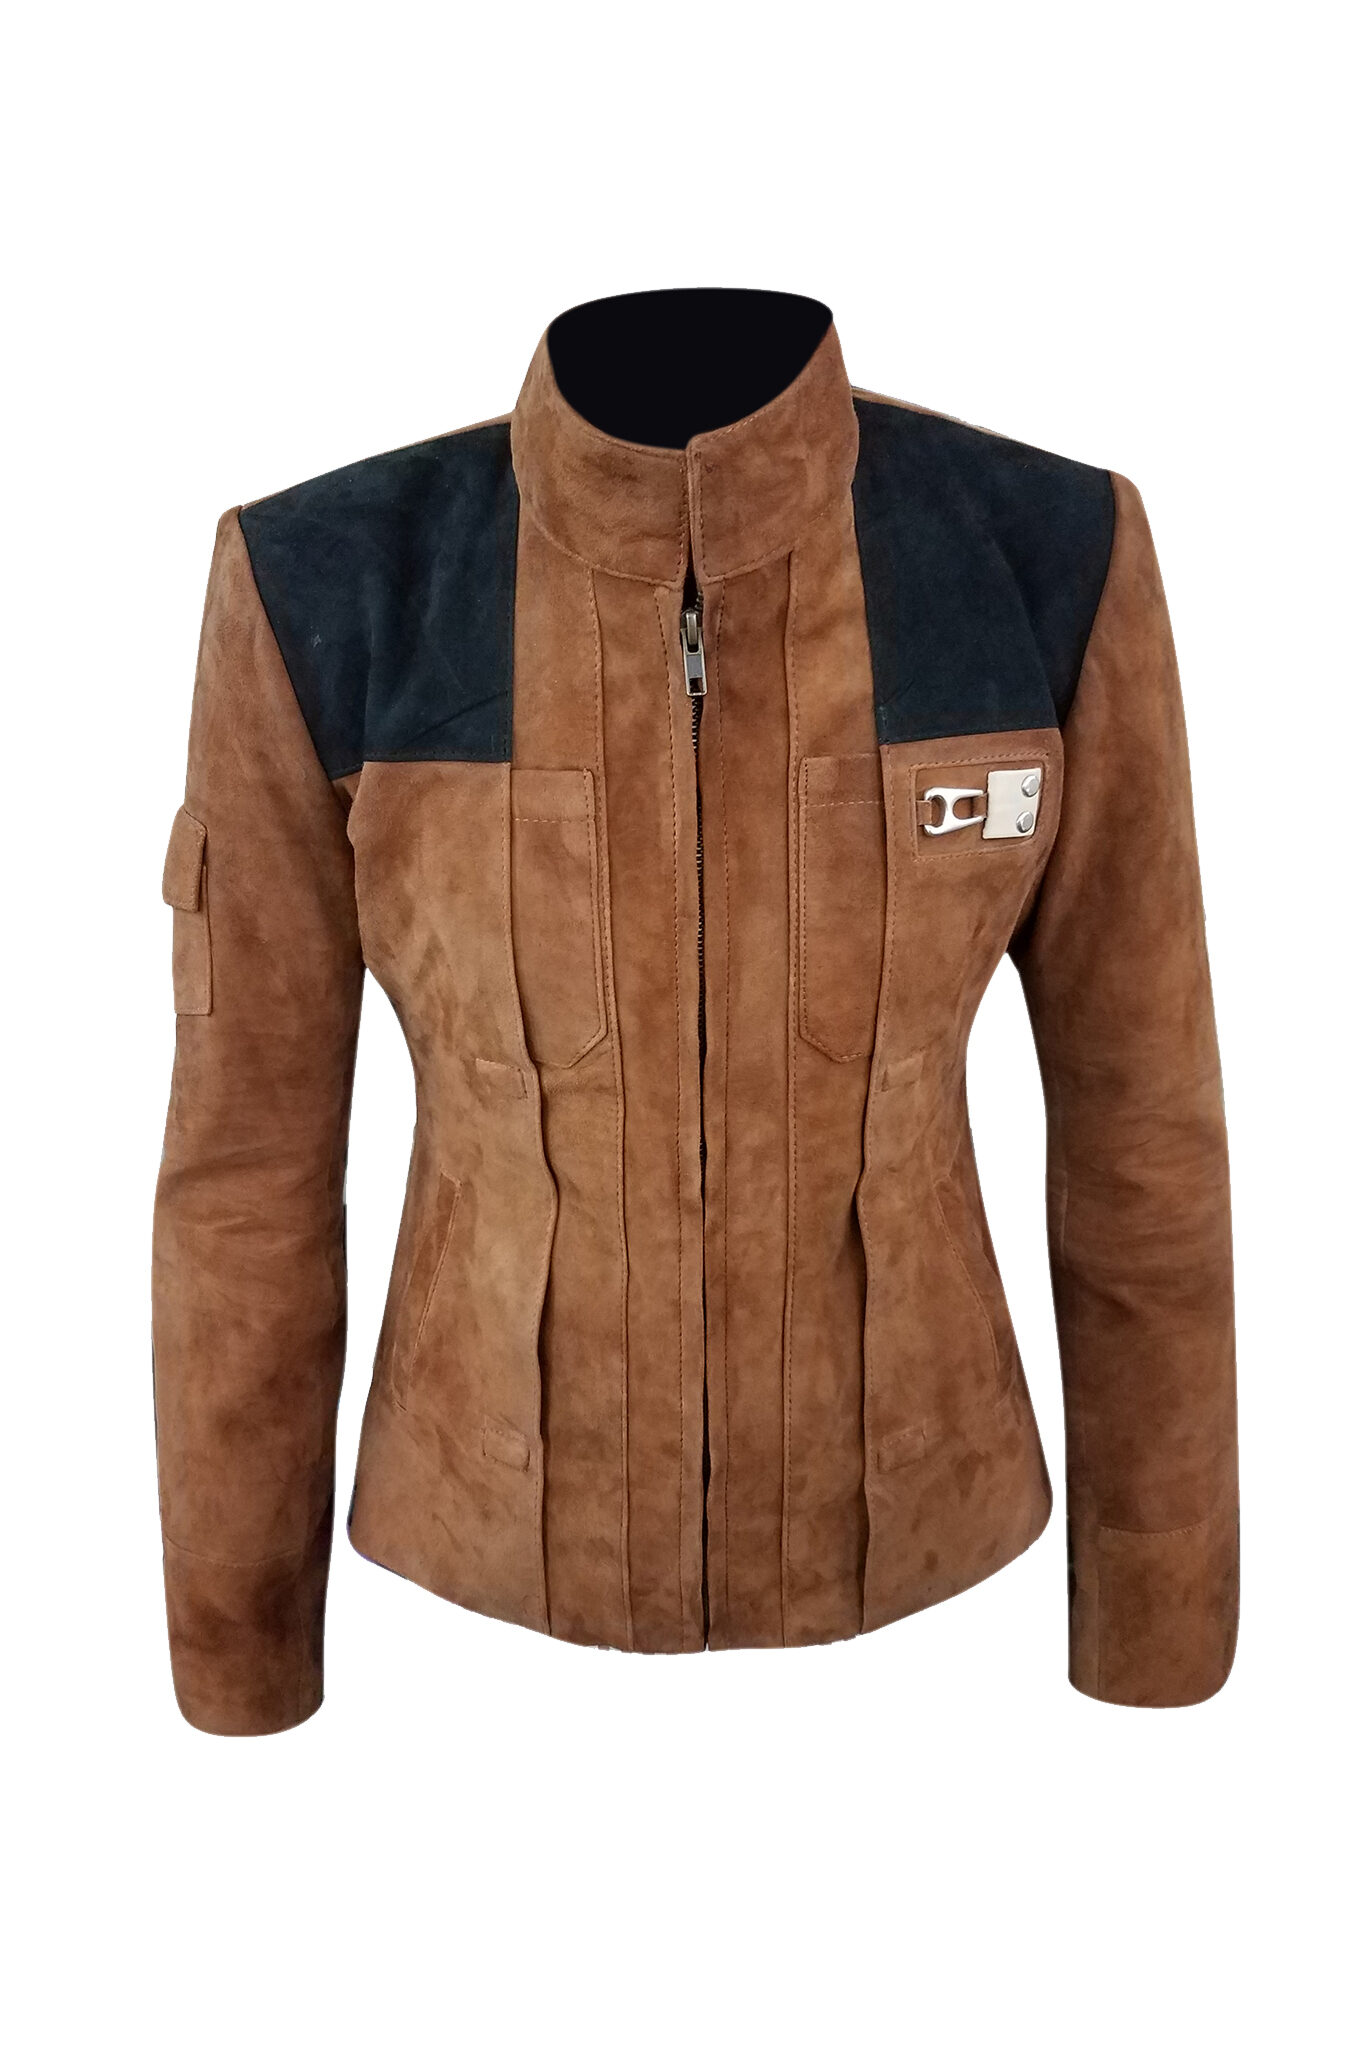 Suede Leather Han Solo Jacket-1